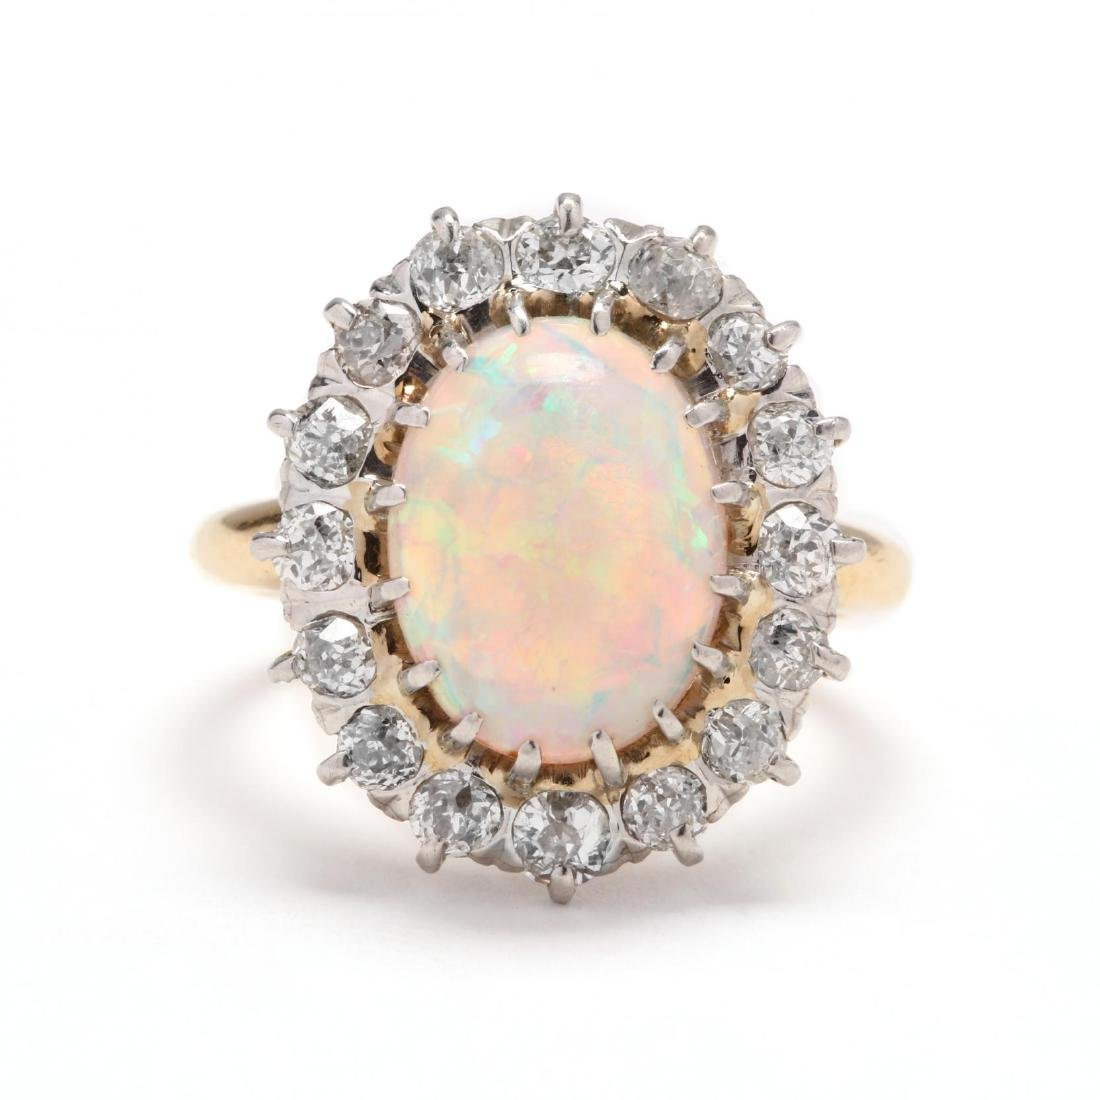 Vintage 14KT Gold, Opal, and Diamond Ring